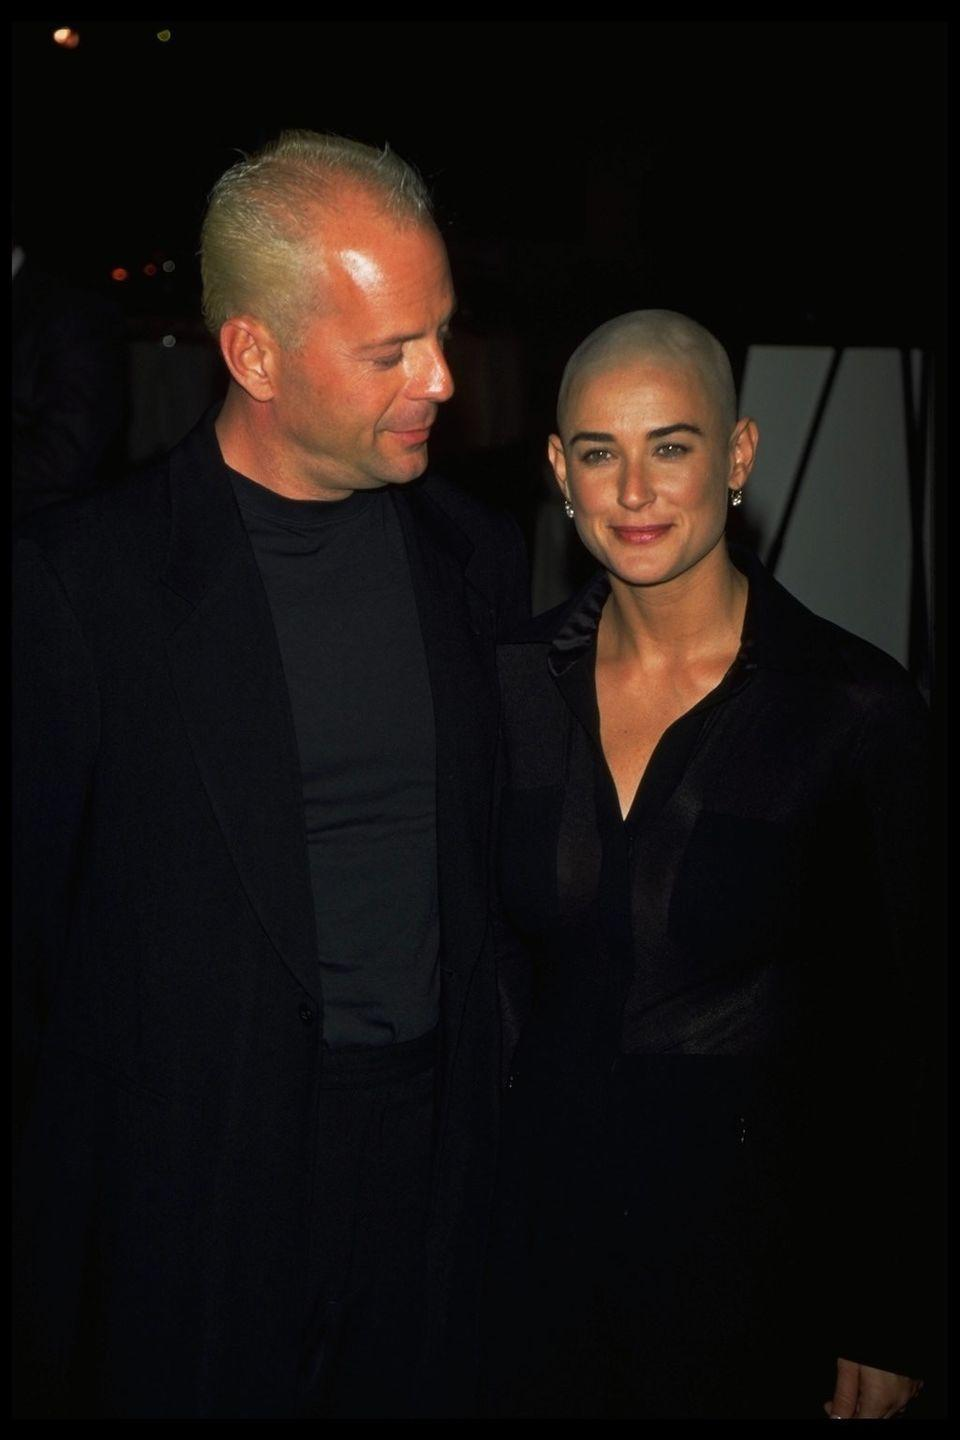 <p>For her role in the film <em>G.I. Jane</em>, the actress not only had to gain loads of muscle, but she also completely shaved her head. If anyone could pull it off though, it was Demi.</p>